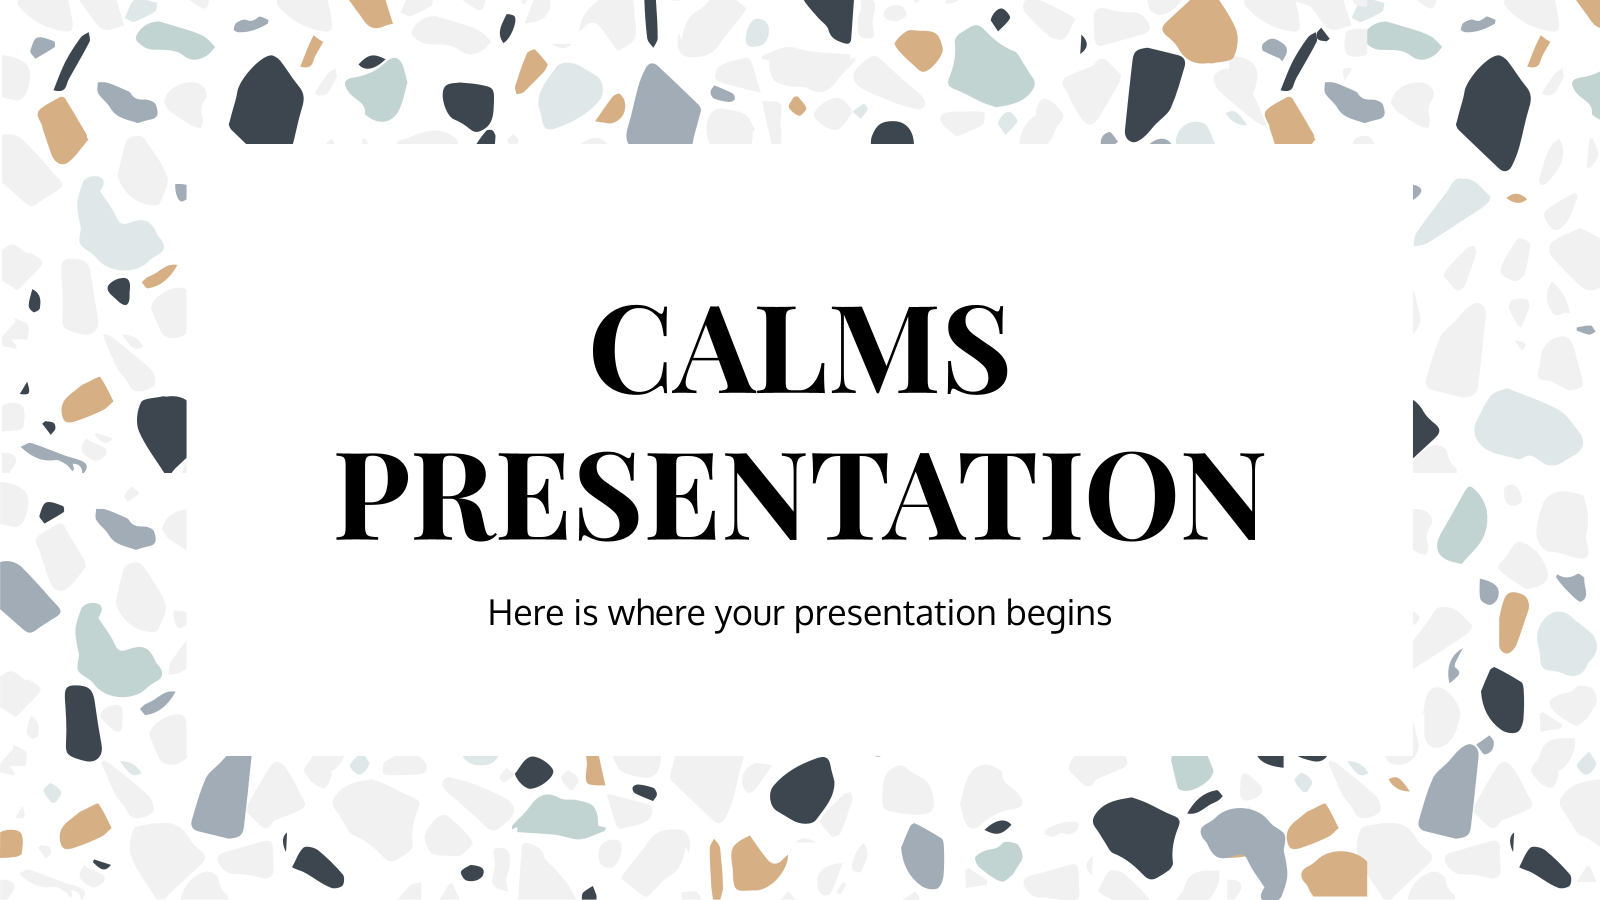 Calms presentation presentation template